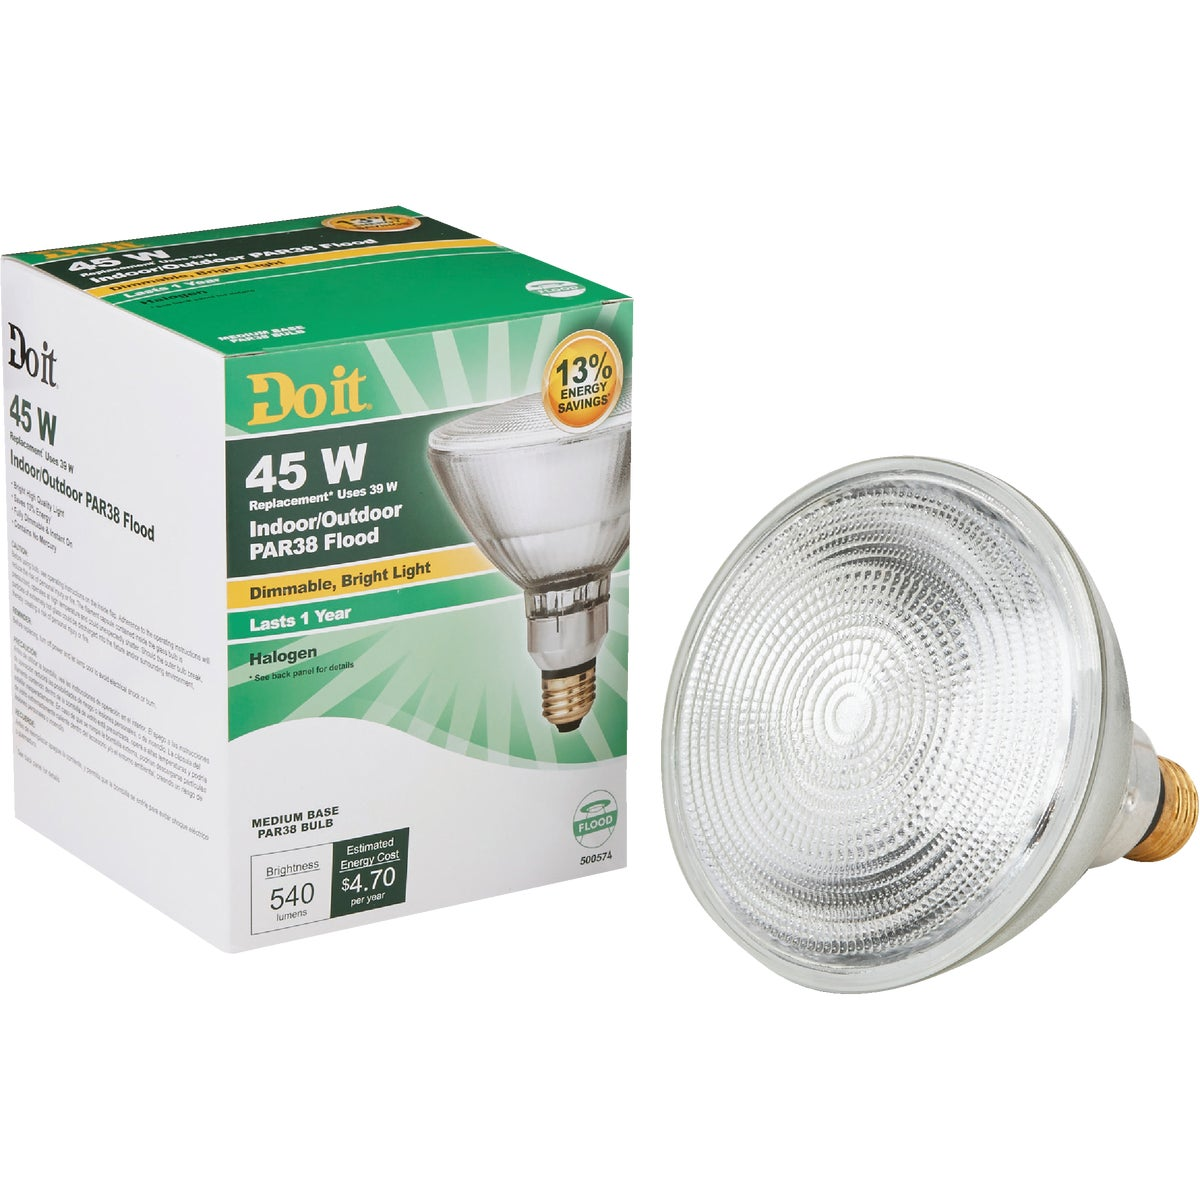 38W PAR38 HAL FLOOD BULB - 90831 38PARH1500FL25DIB by G E Private Label